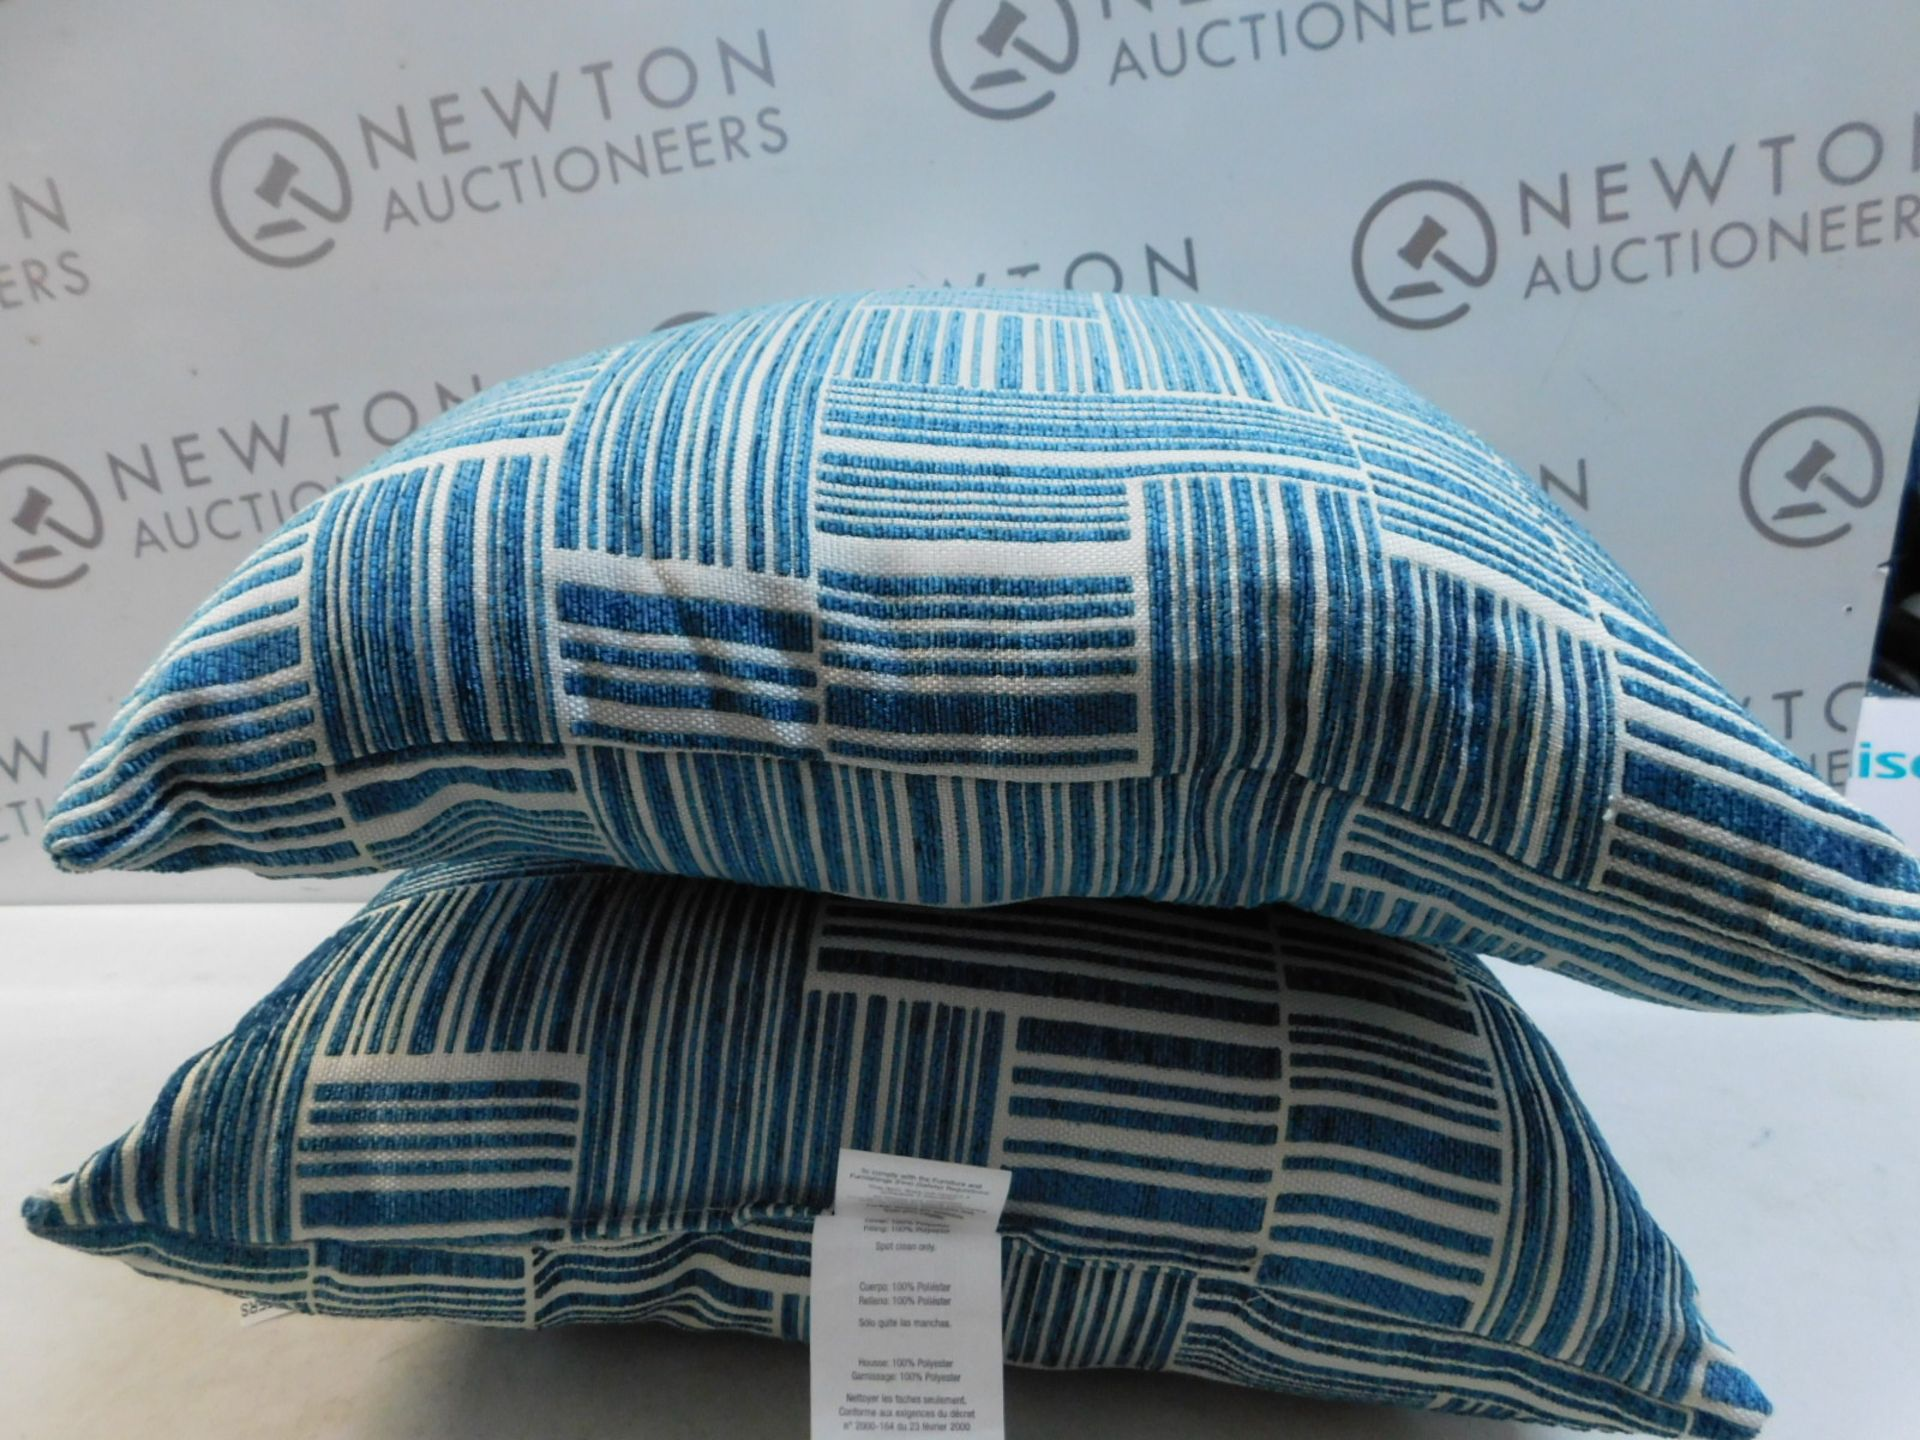 Lot 115 - 1 PAIR OF ARLEE HOME FASHION PATTERNED CUSHIONS RRP £39.99